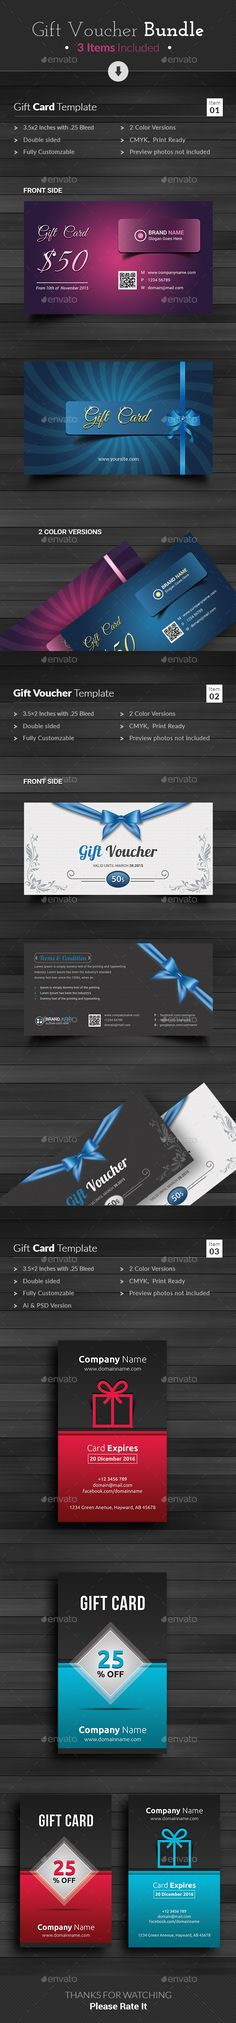 Buy Gift Voucher by themedevisers on GraphicRiver. This Gift Voucher Bundle is best suitable for promoting your business, product or services like beauty salon, spa cen. Gift Voucher Design, Gift Box Design, Print Templates, Design Templates, Spa Center, Relax, Discount Vouchers, Gift Vouchers, Business Card Design